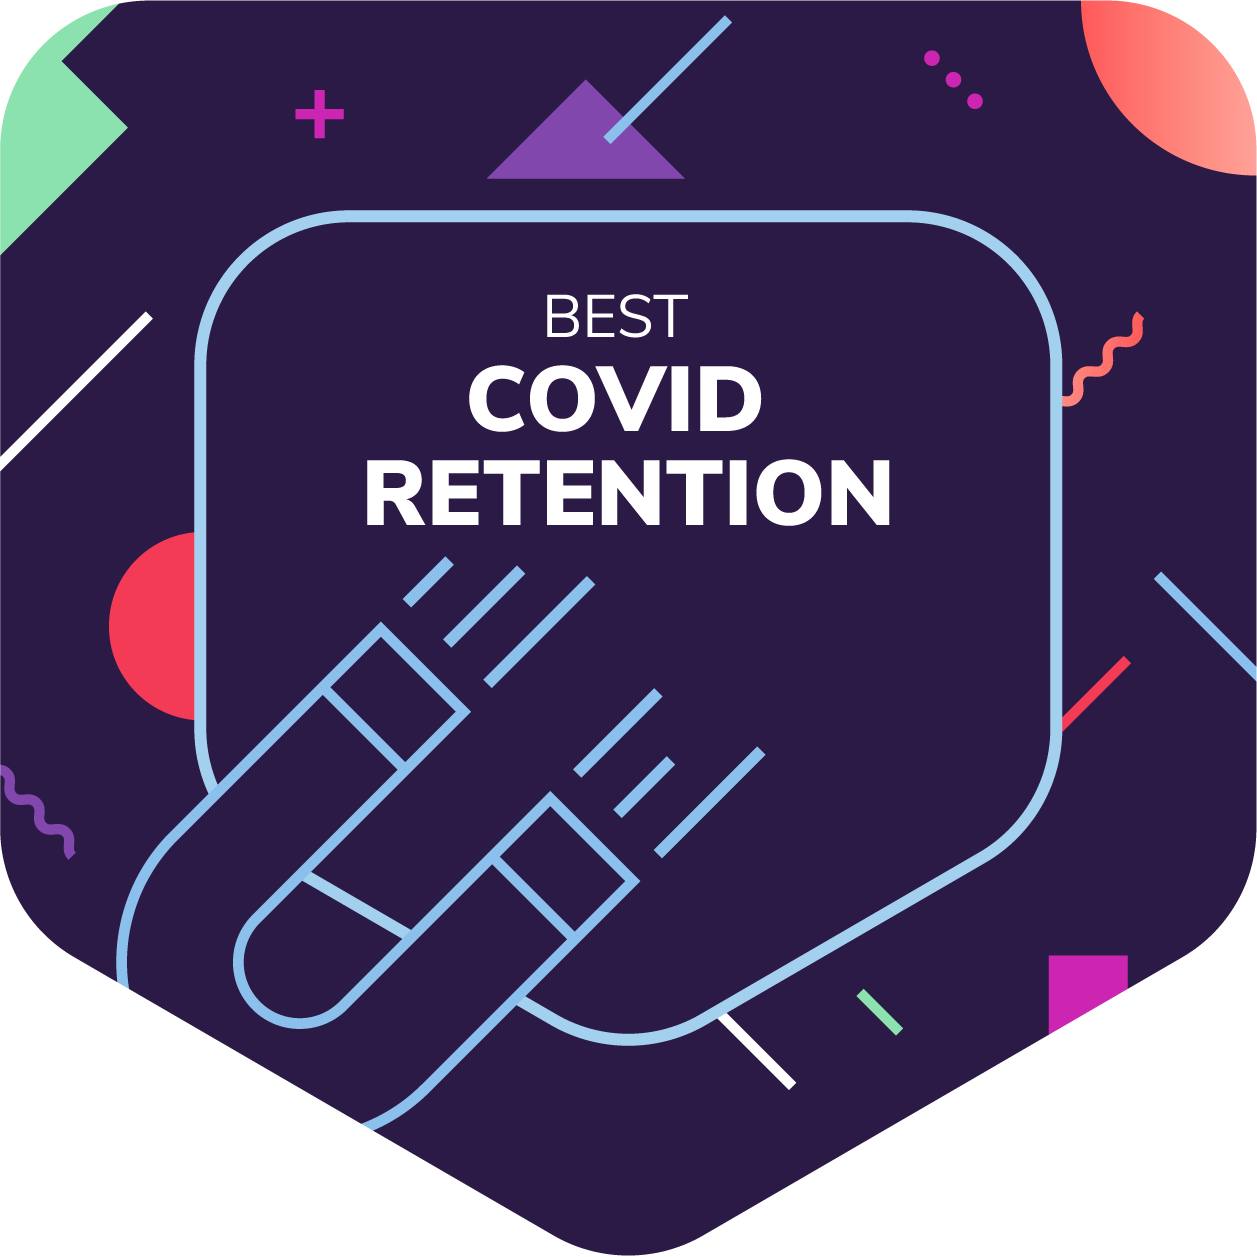 Best Covid Retention